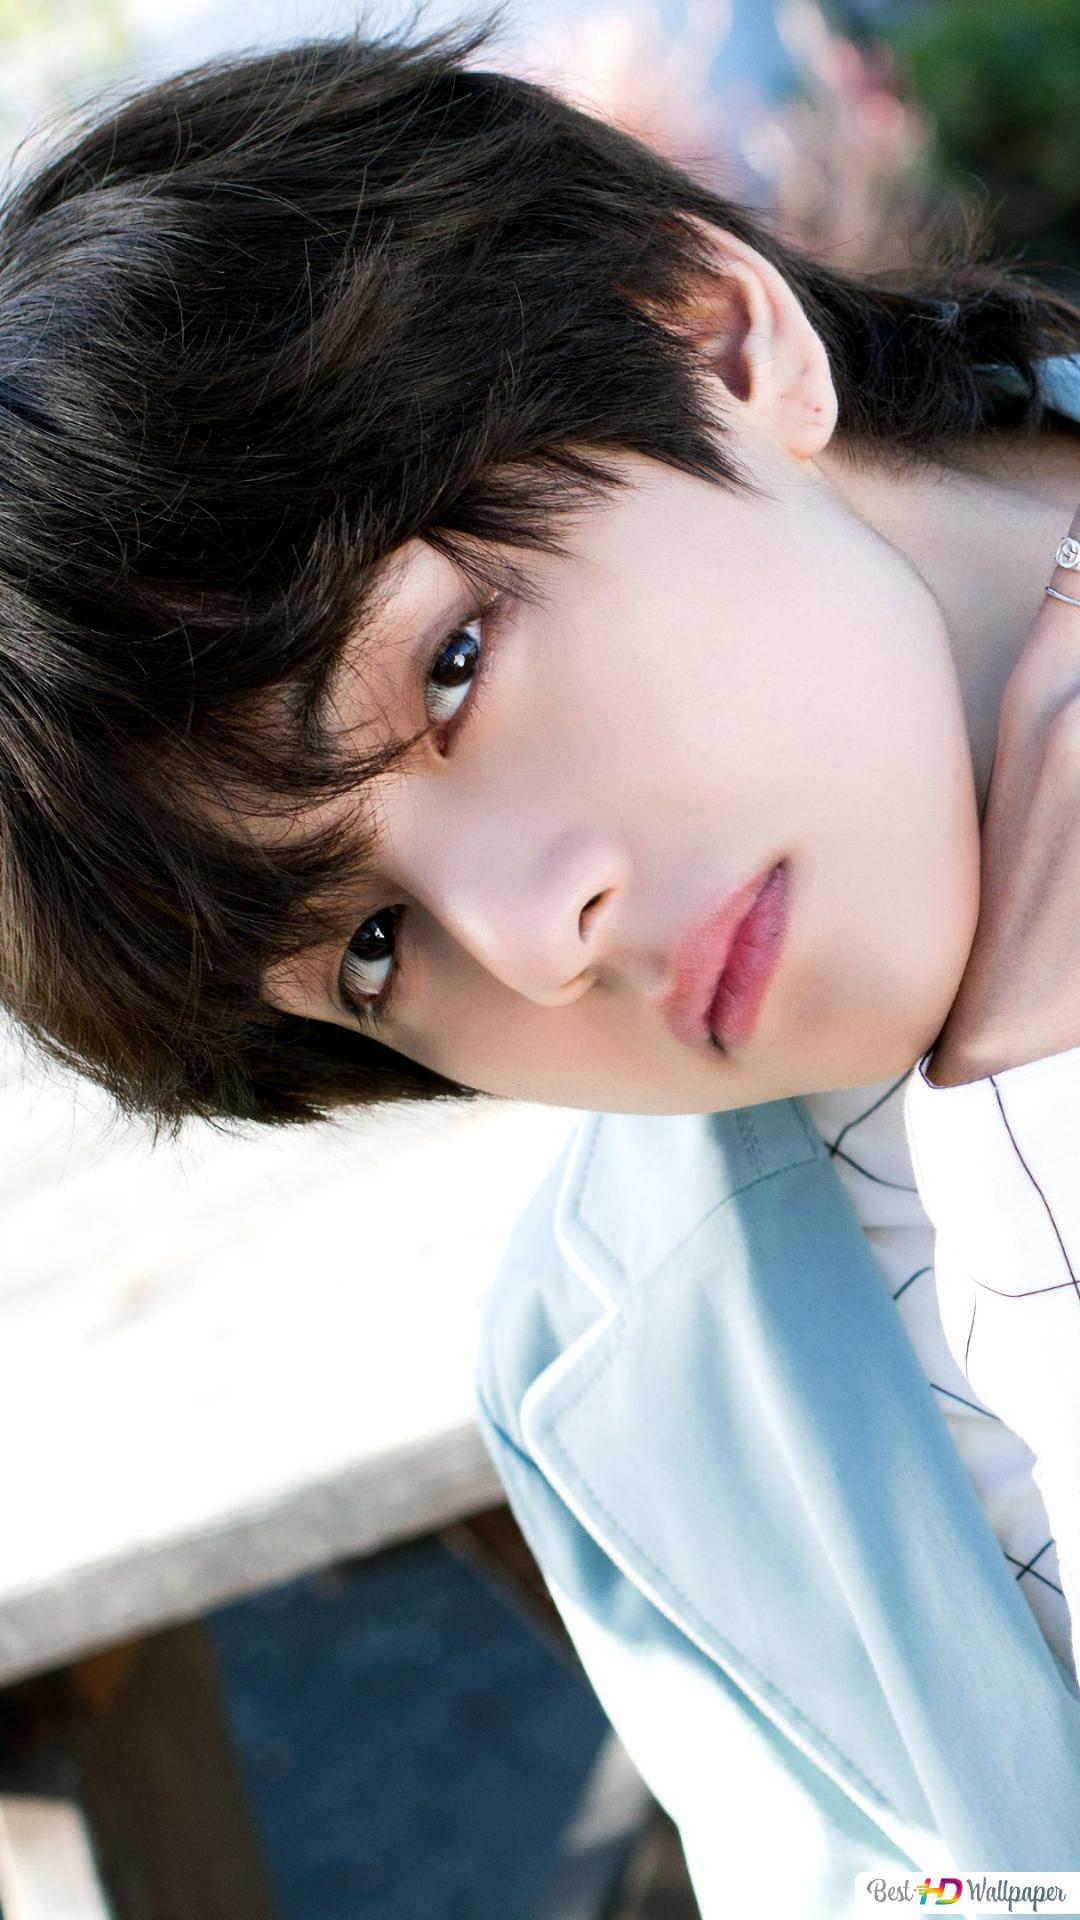 k pop group bts idol v kim tae hyung wallpaper 1080x1920 53648 165